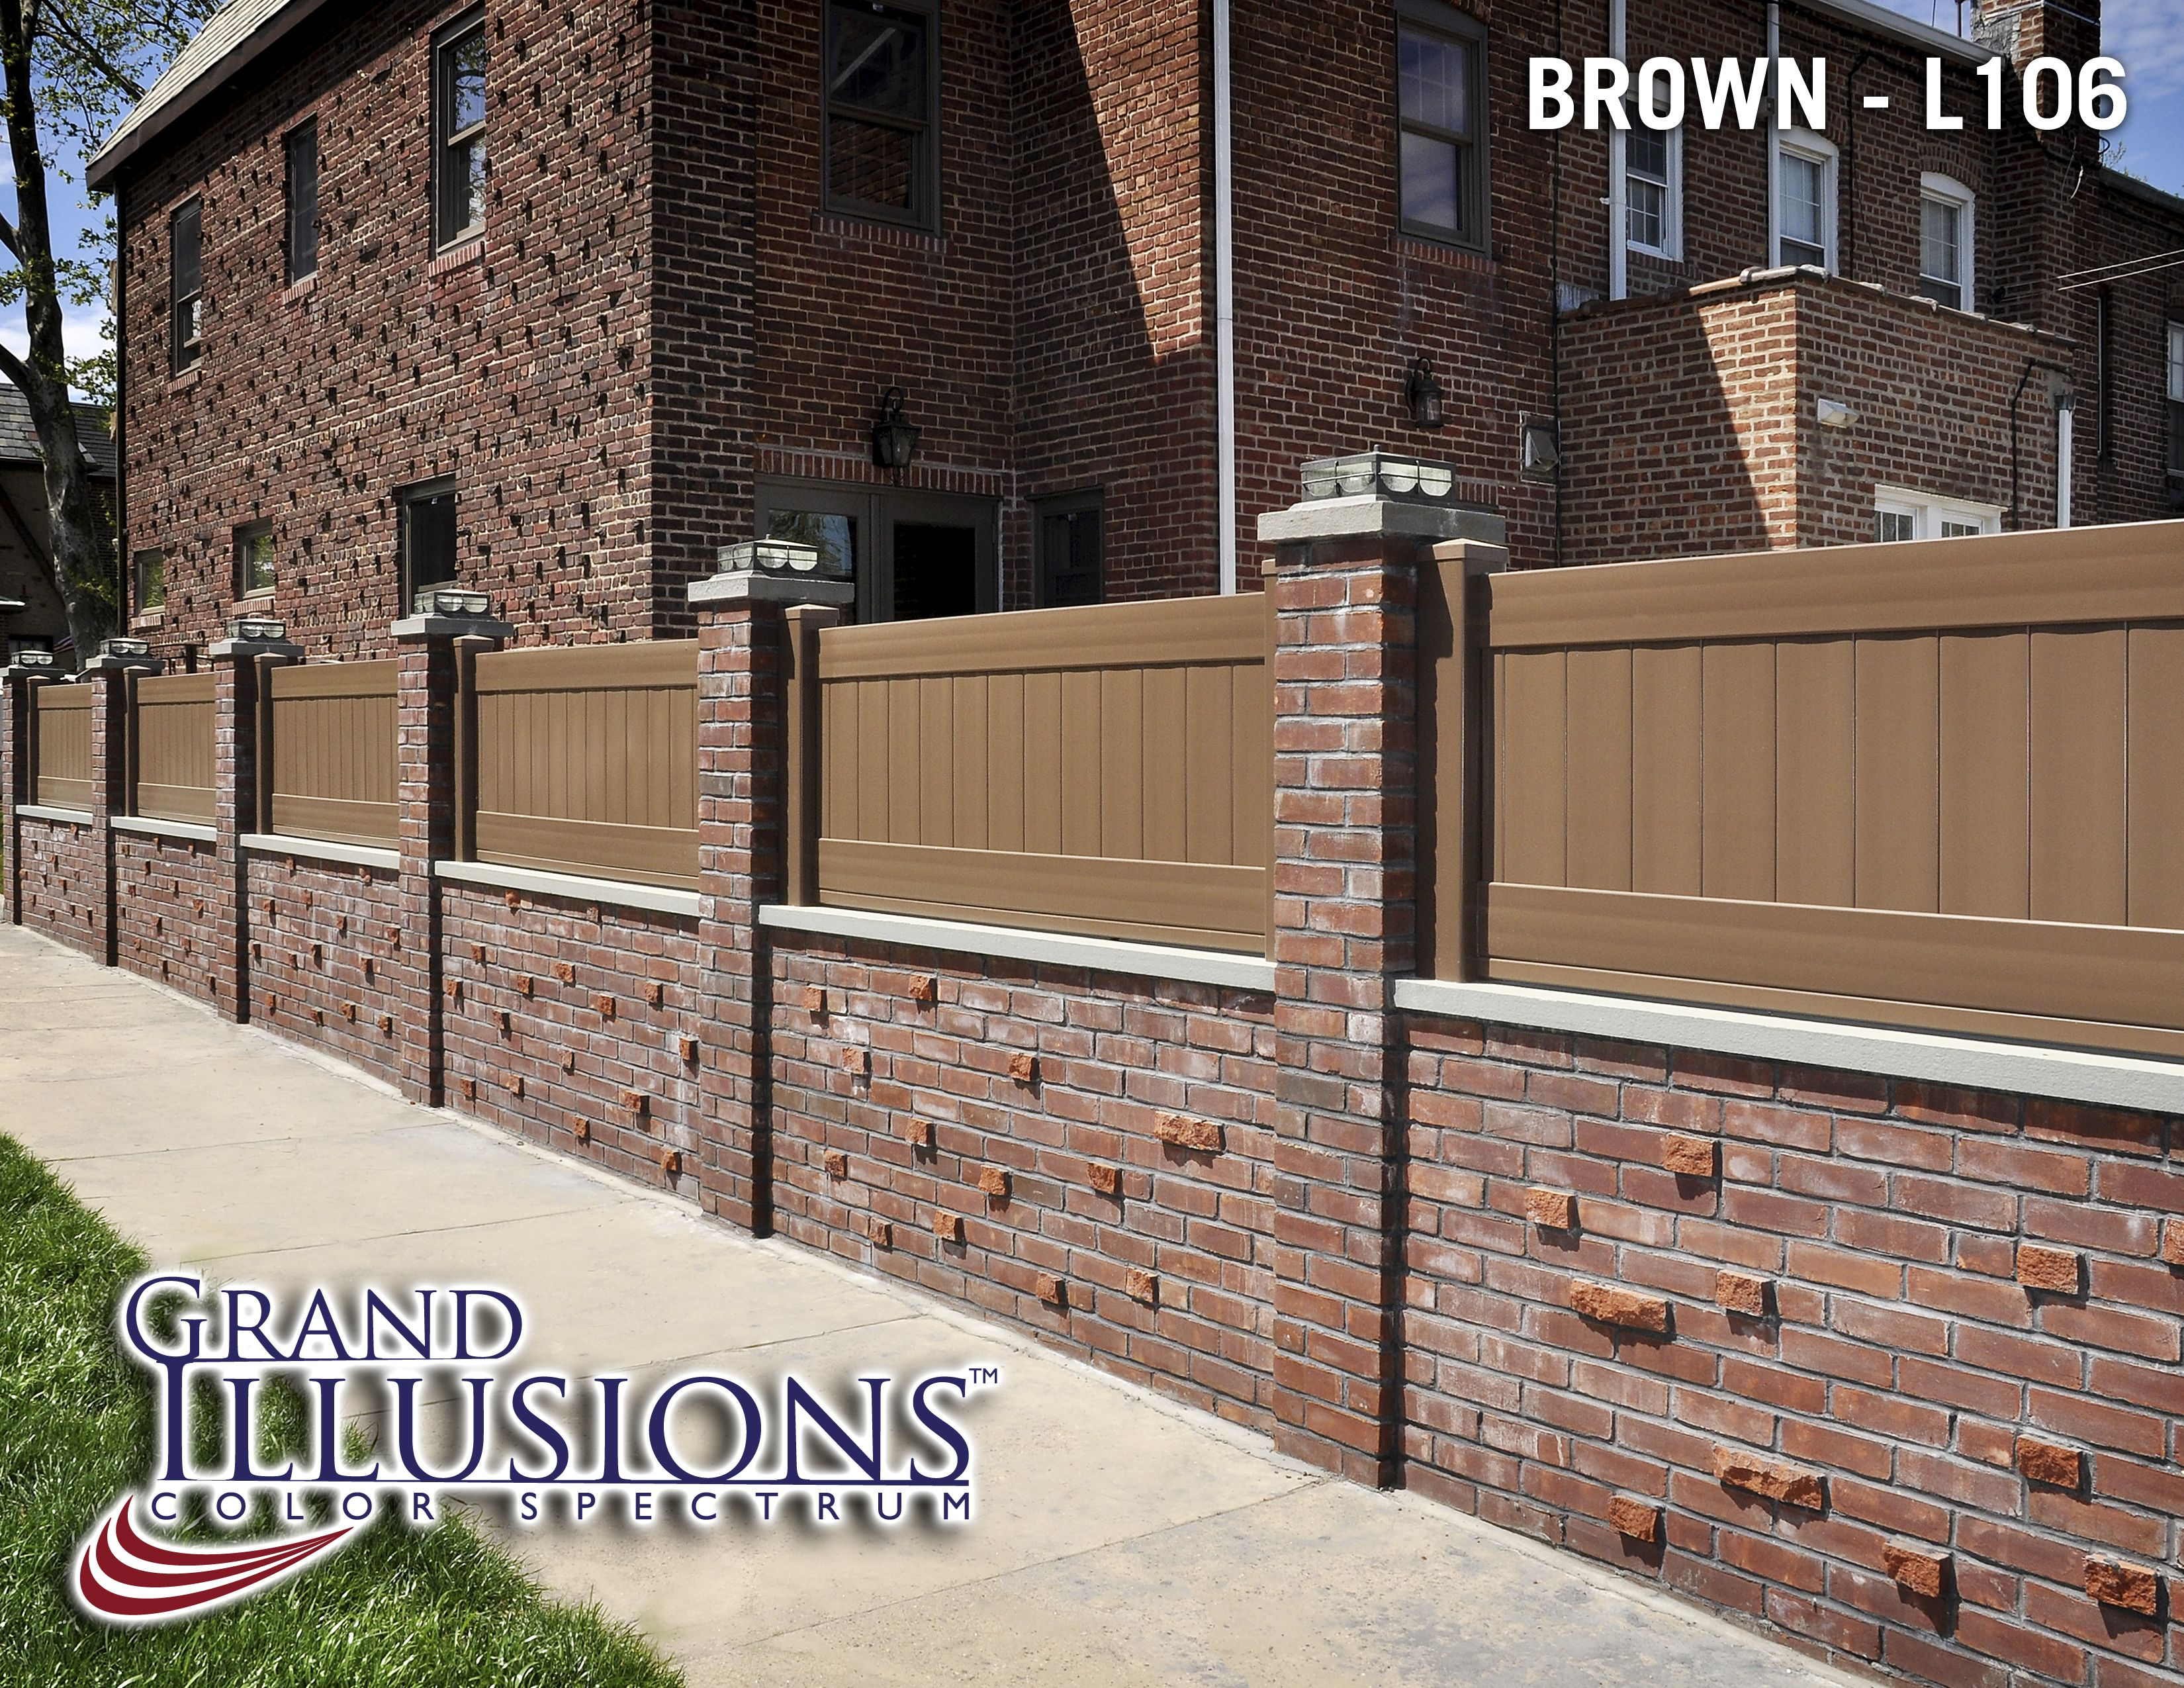 Vinyl Fence On Top Of Brick Fence Since The Existing Fences Are Too Short Vinyl Privacy Fence Vinyl Fence Wood Grain Vinyl Fence